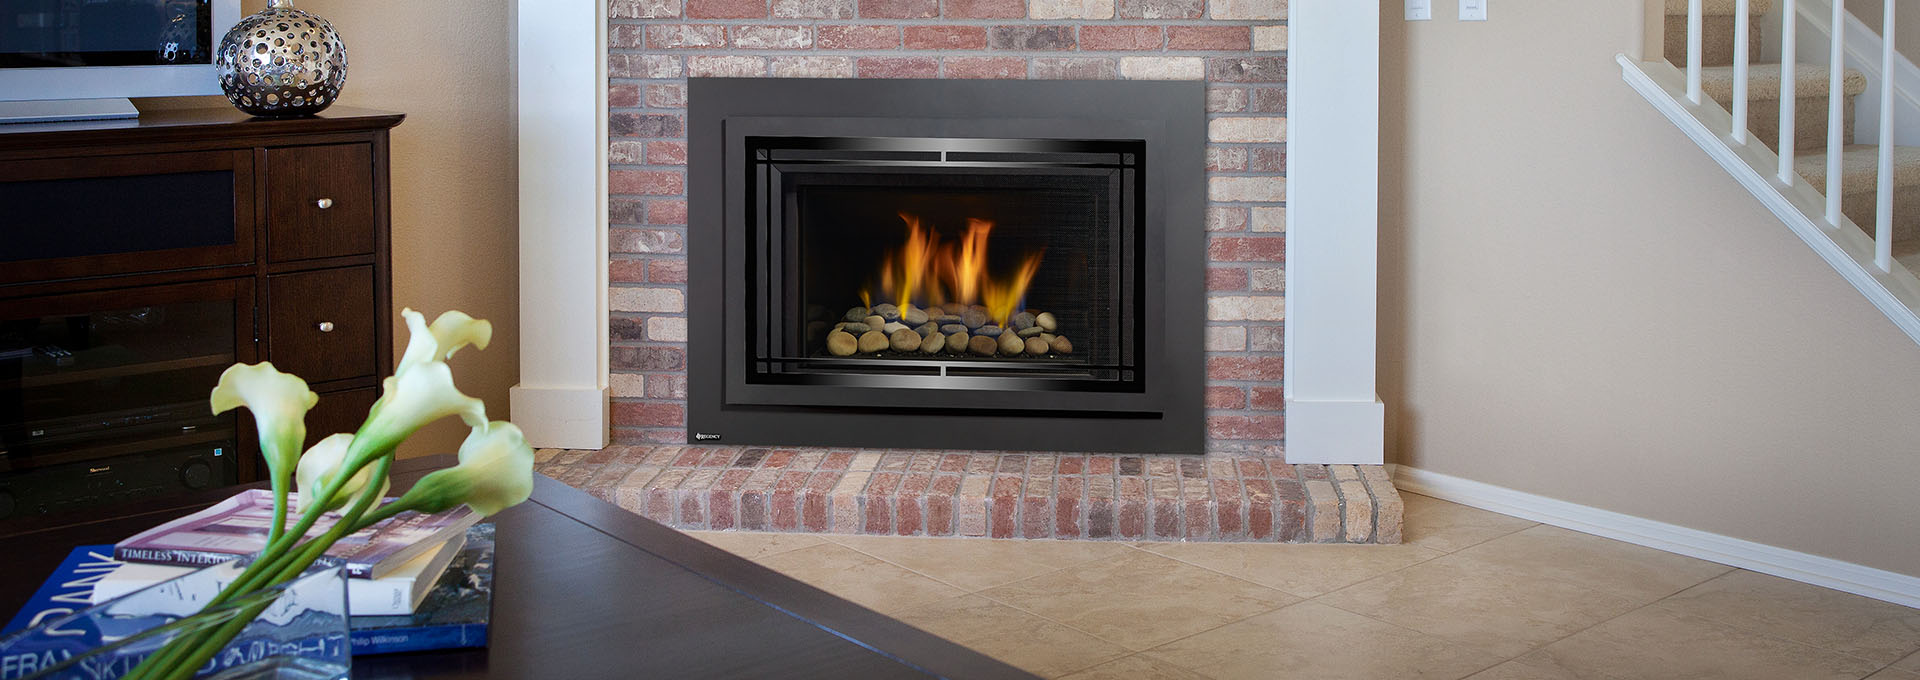 stones co gas ideas fireplace saomc enchanting pictures